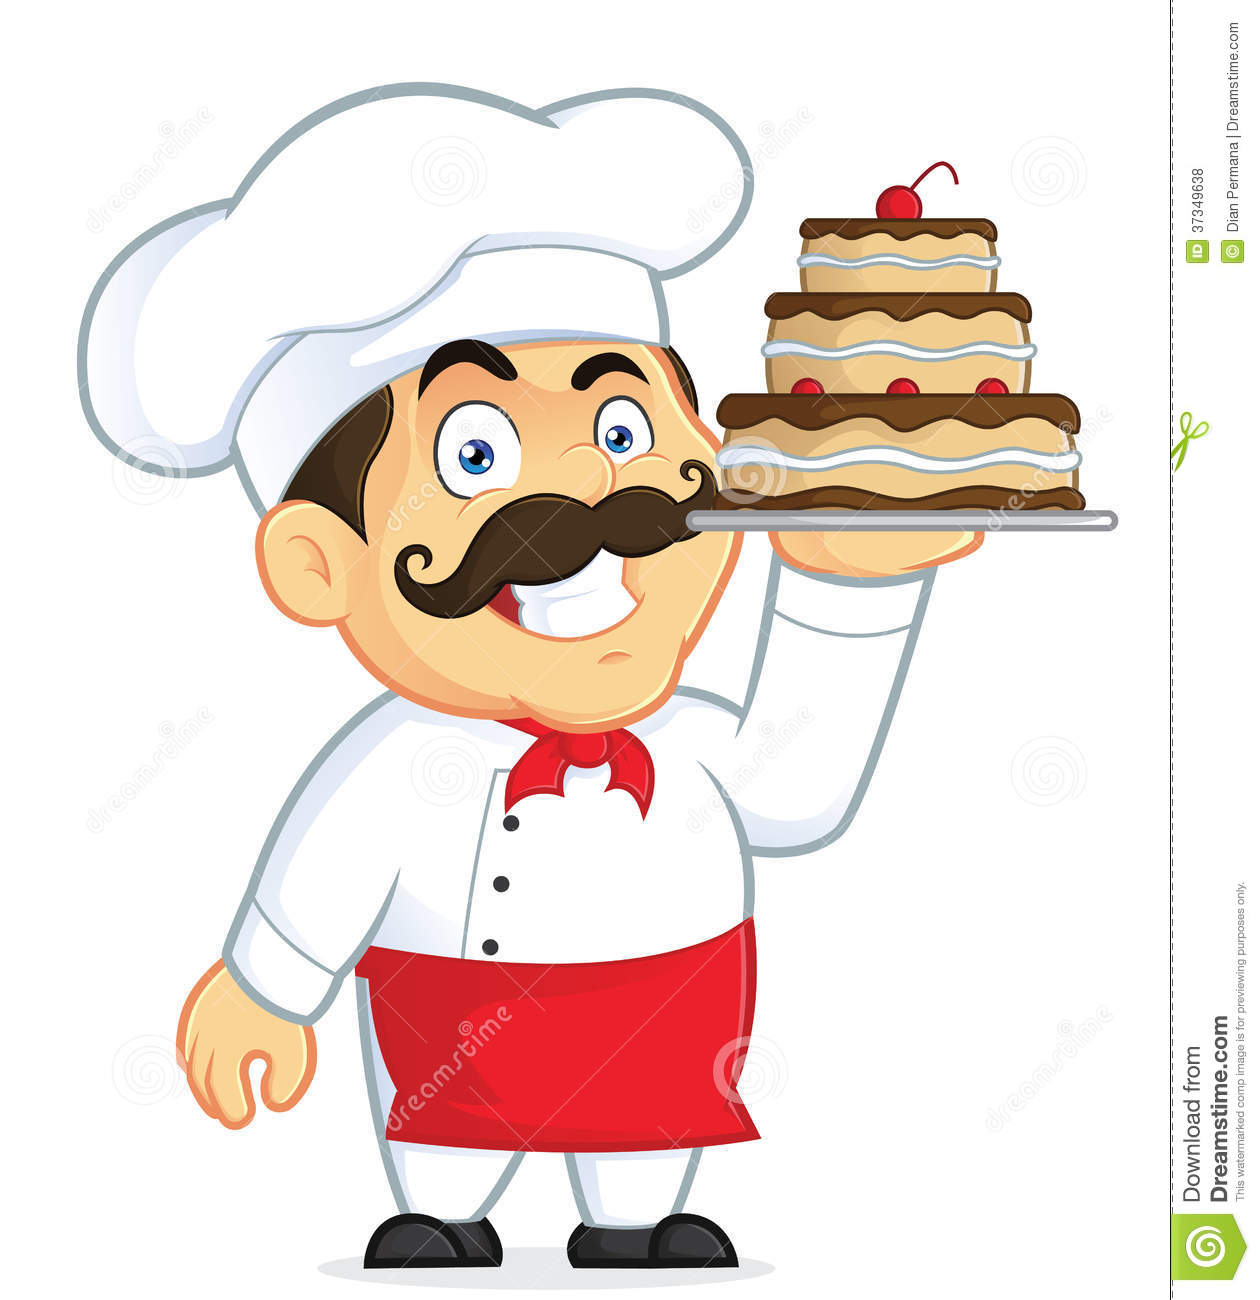 Moving clipart chef Chef%20clipart Free Clipart Art Clip